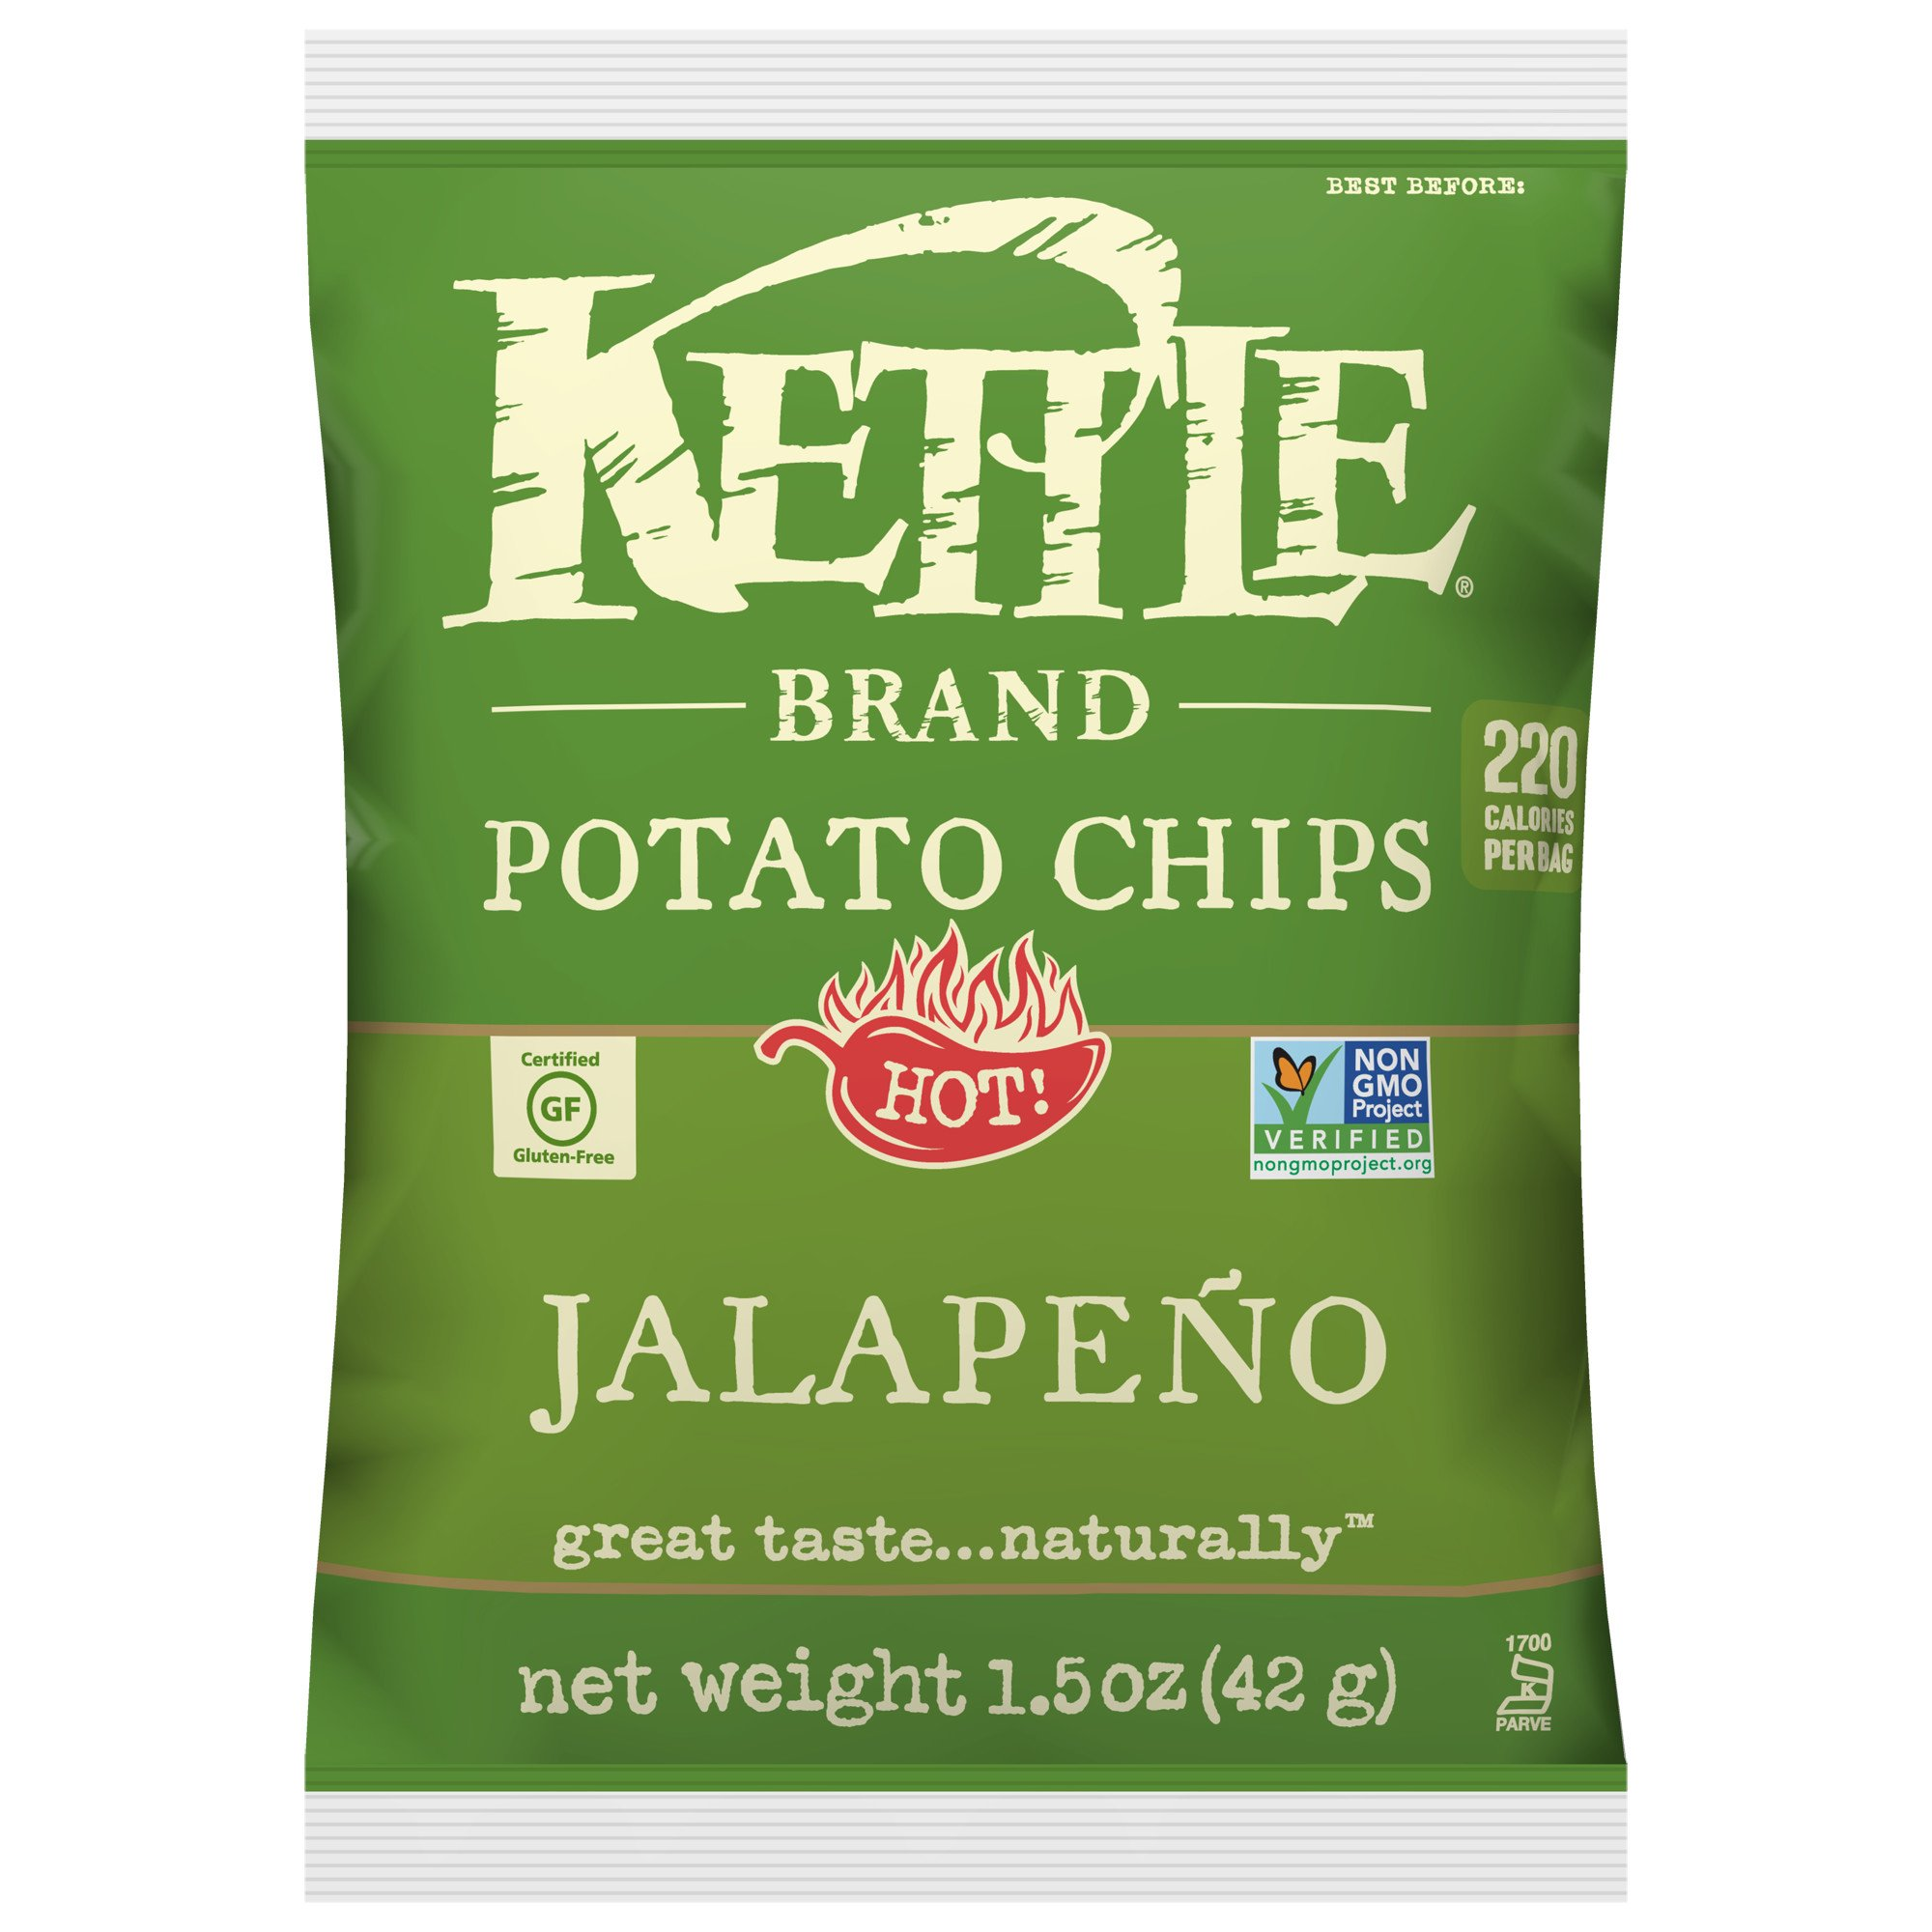 Kettle Brand Potato Chips, Jalapeno, 1.5 oz by KETTLE FOODS (Image #1)